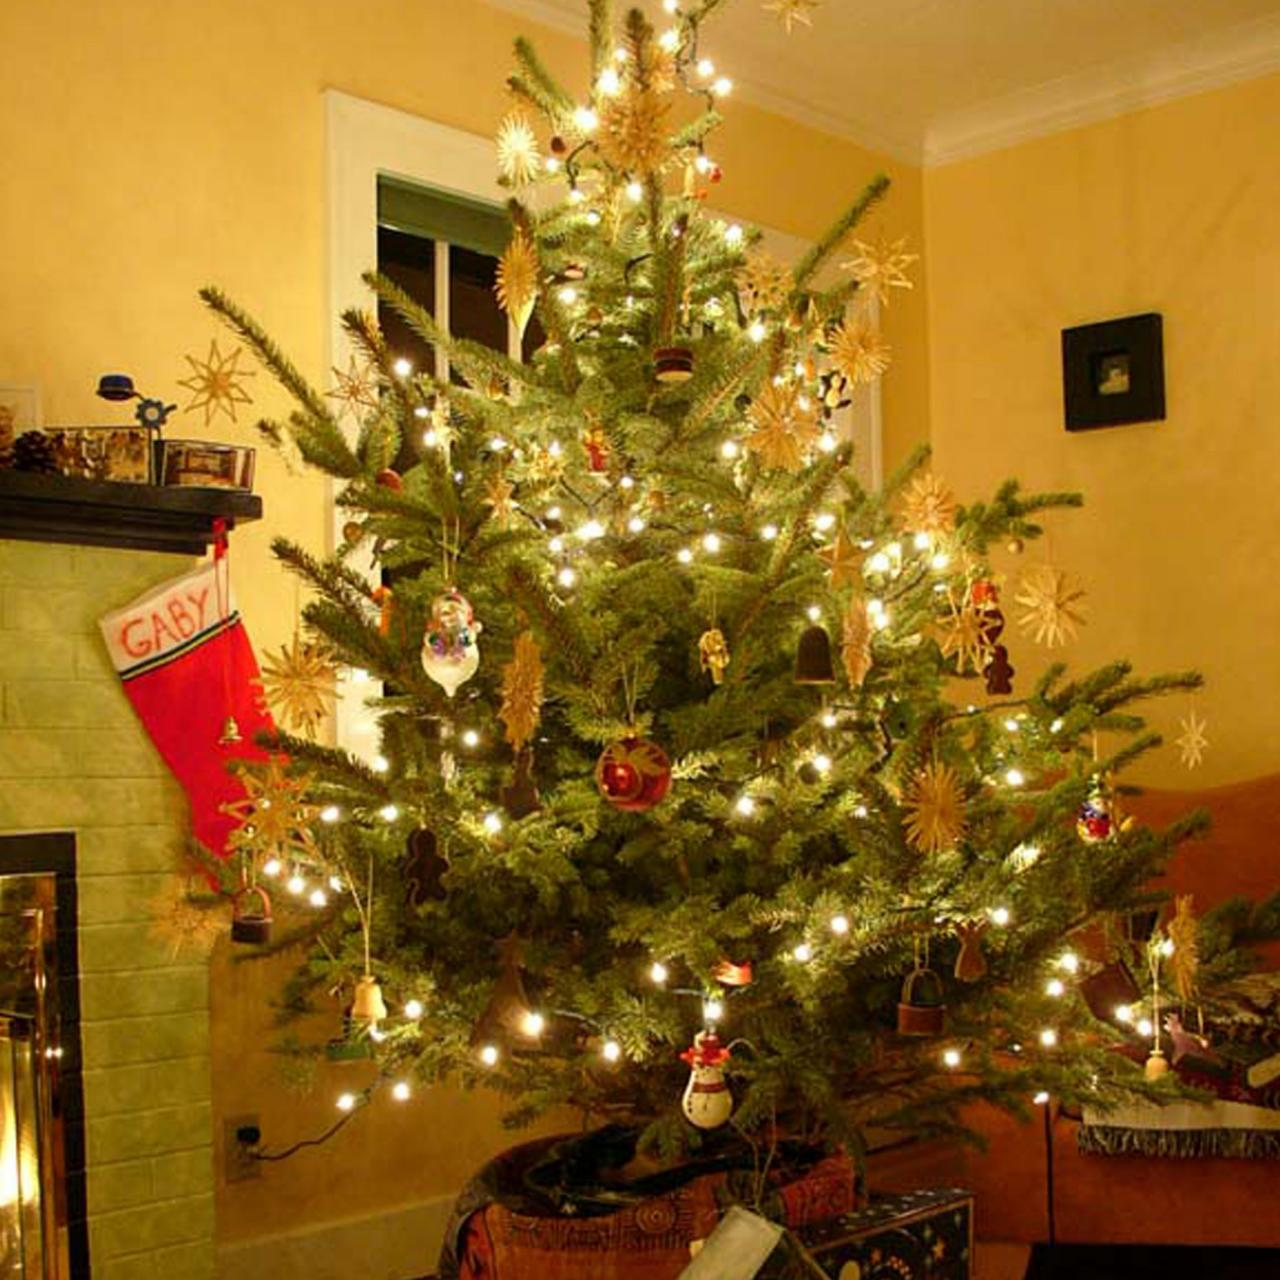 Living Christmas Tree.How To Care For Your Living Christmas Tree Hgtv